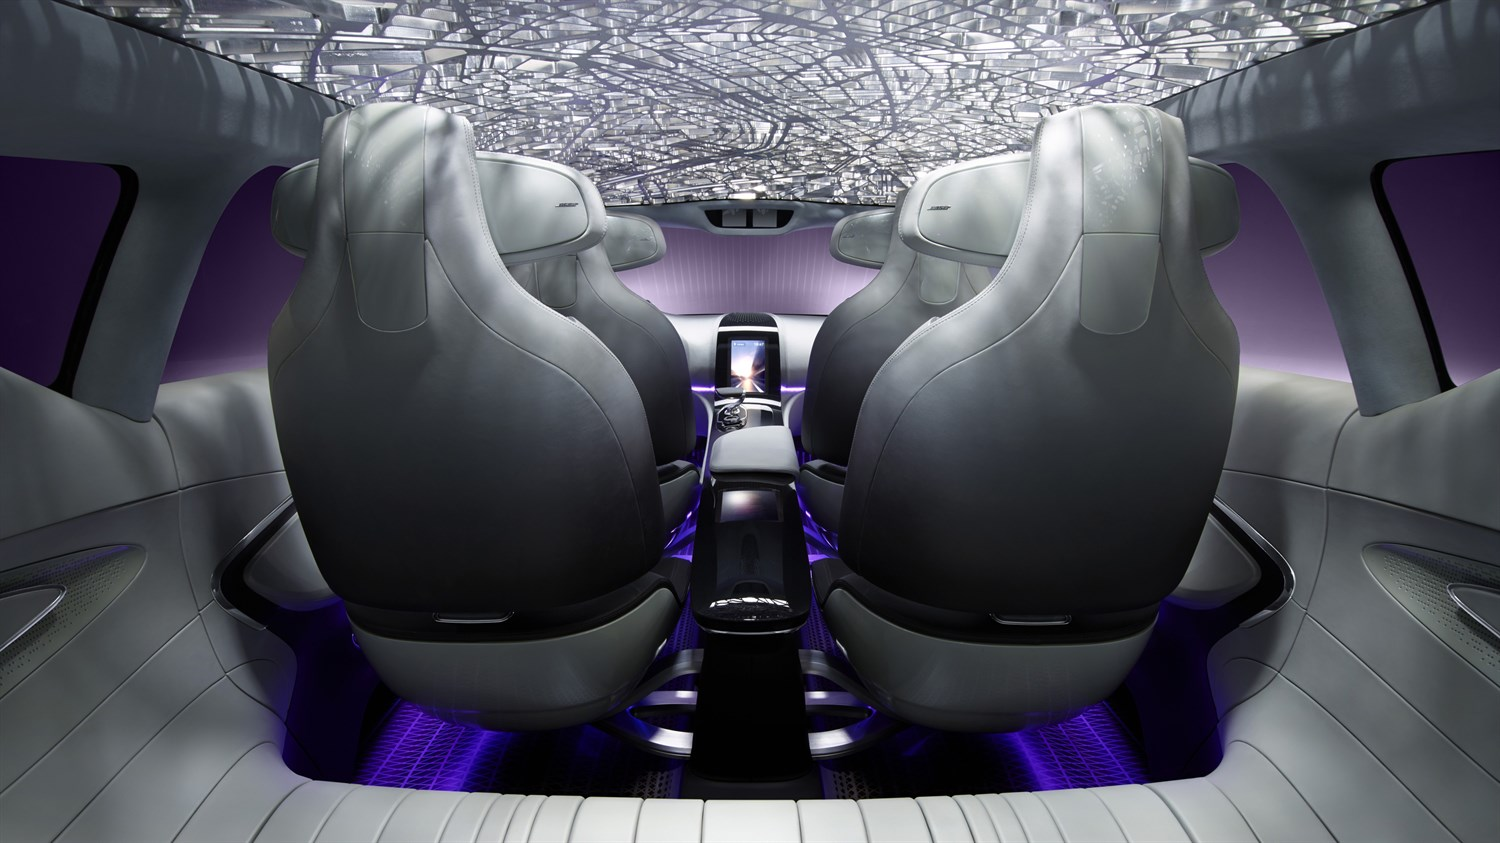 Renault INITIALE PARIS concept car close up picture of the rear of the cabin